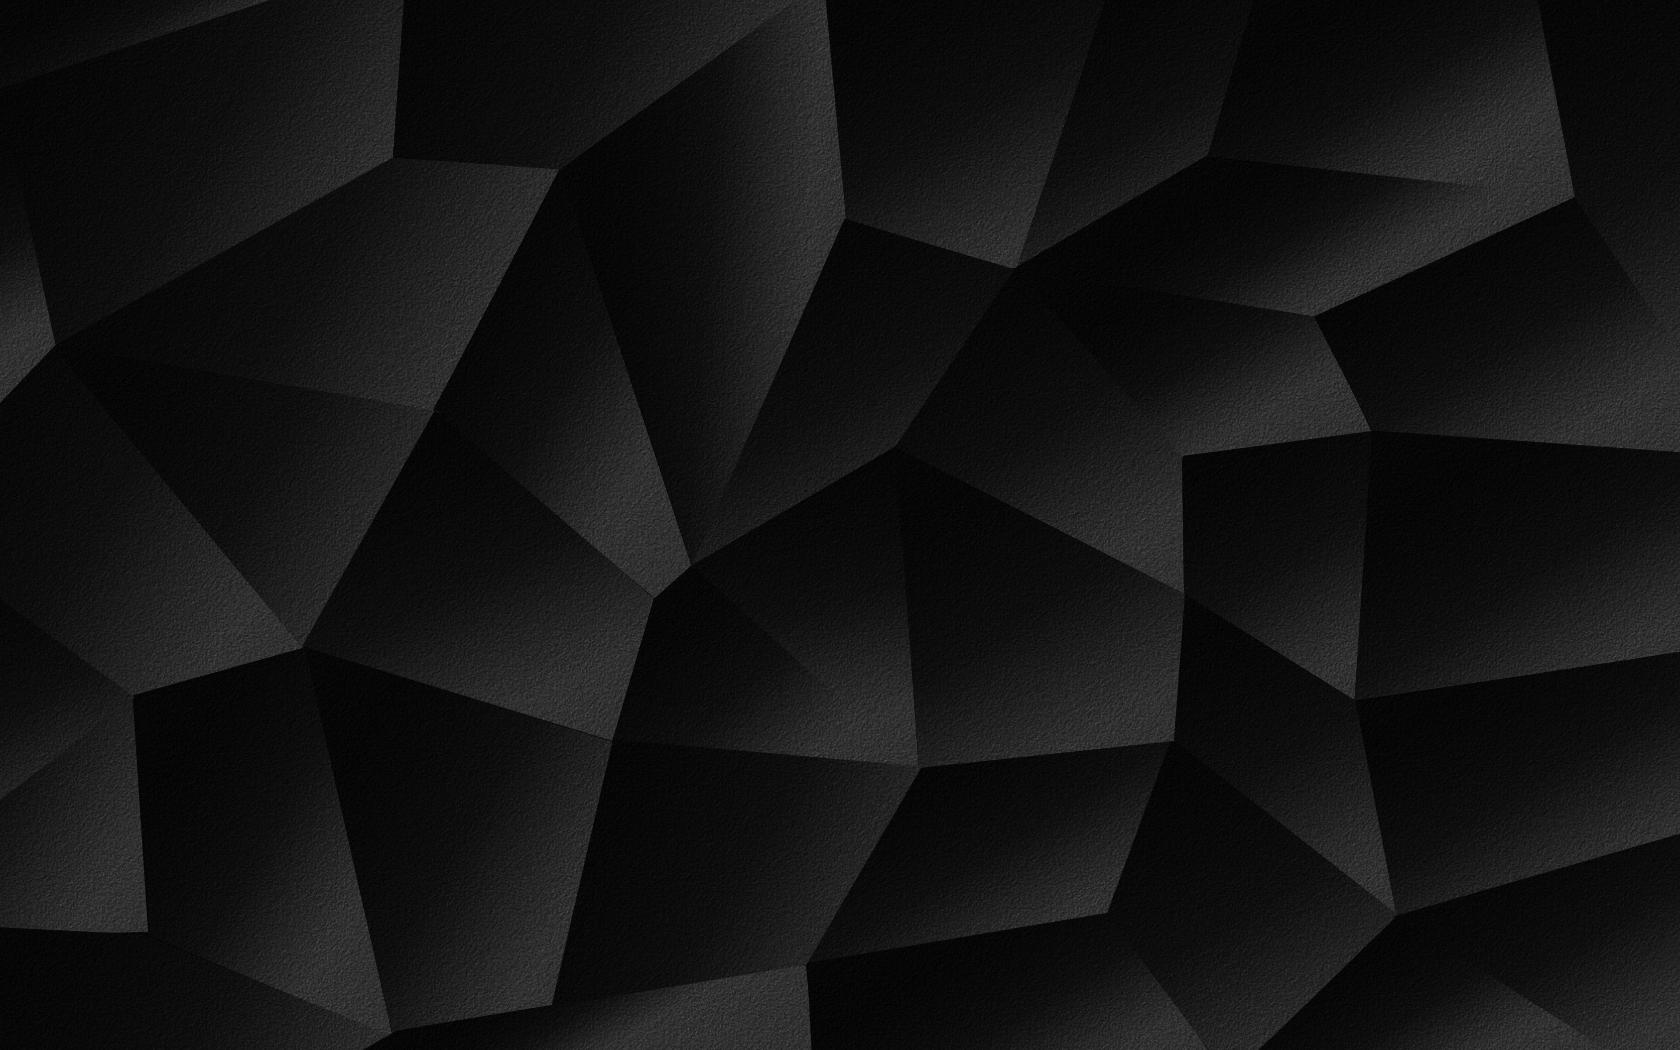 Pattern Desktop Backgrounds - Wallpaper Cave